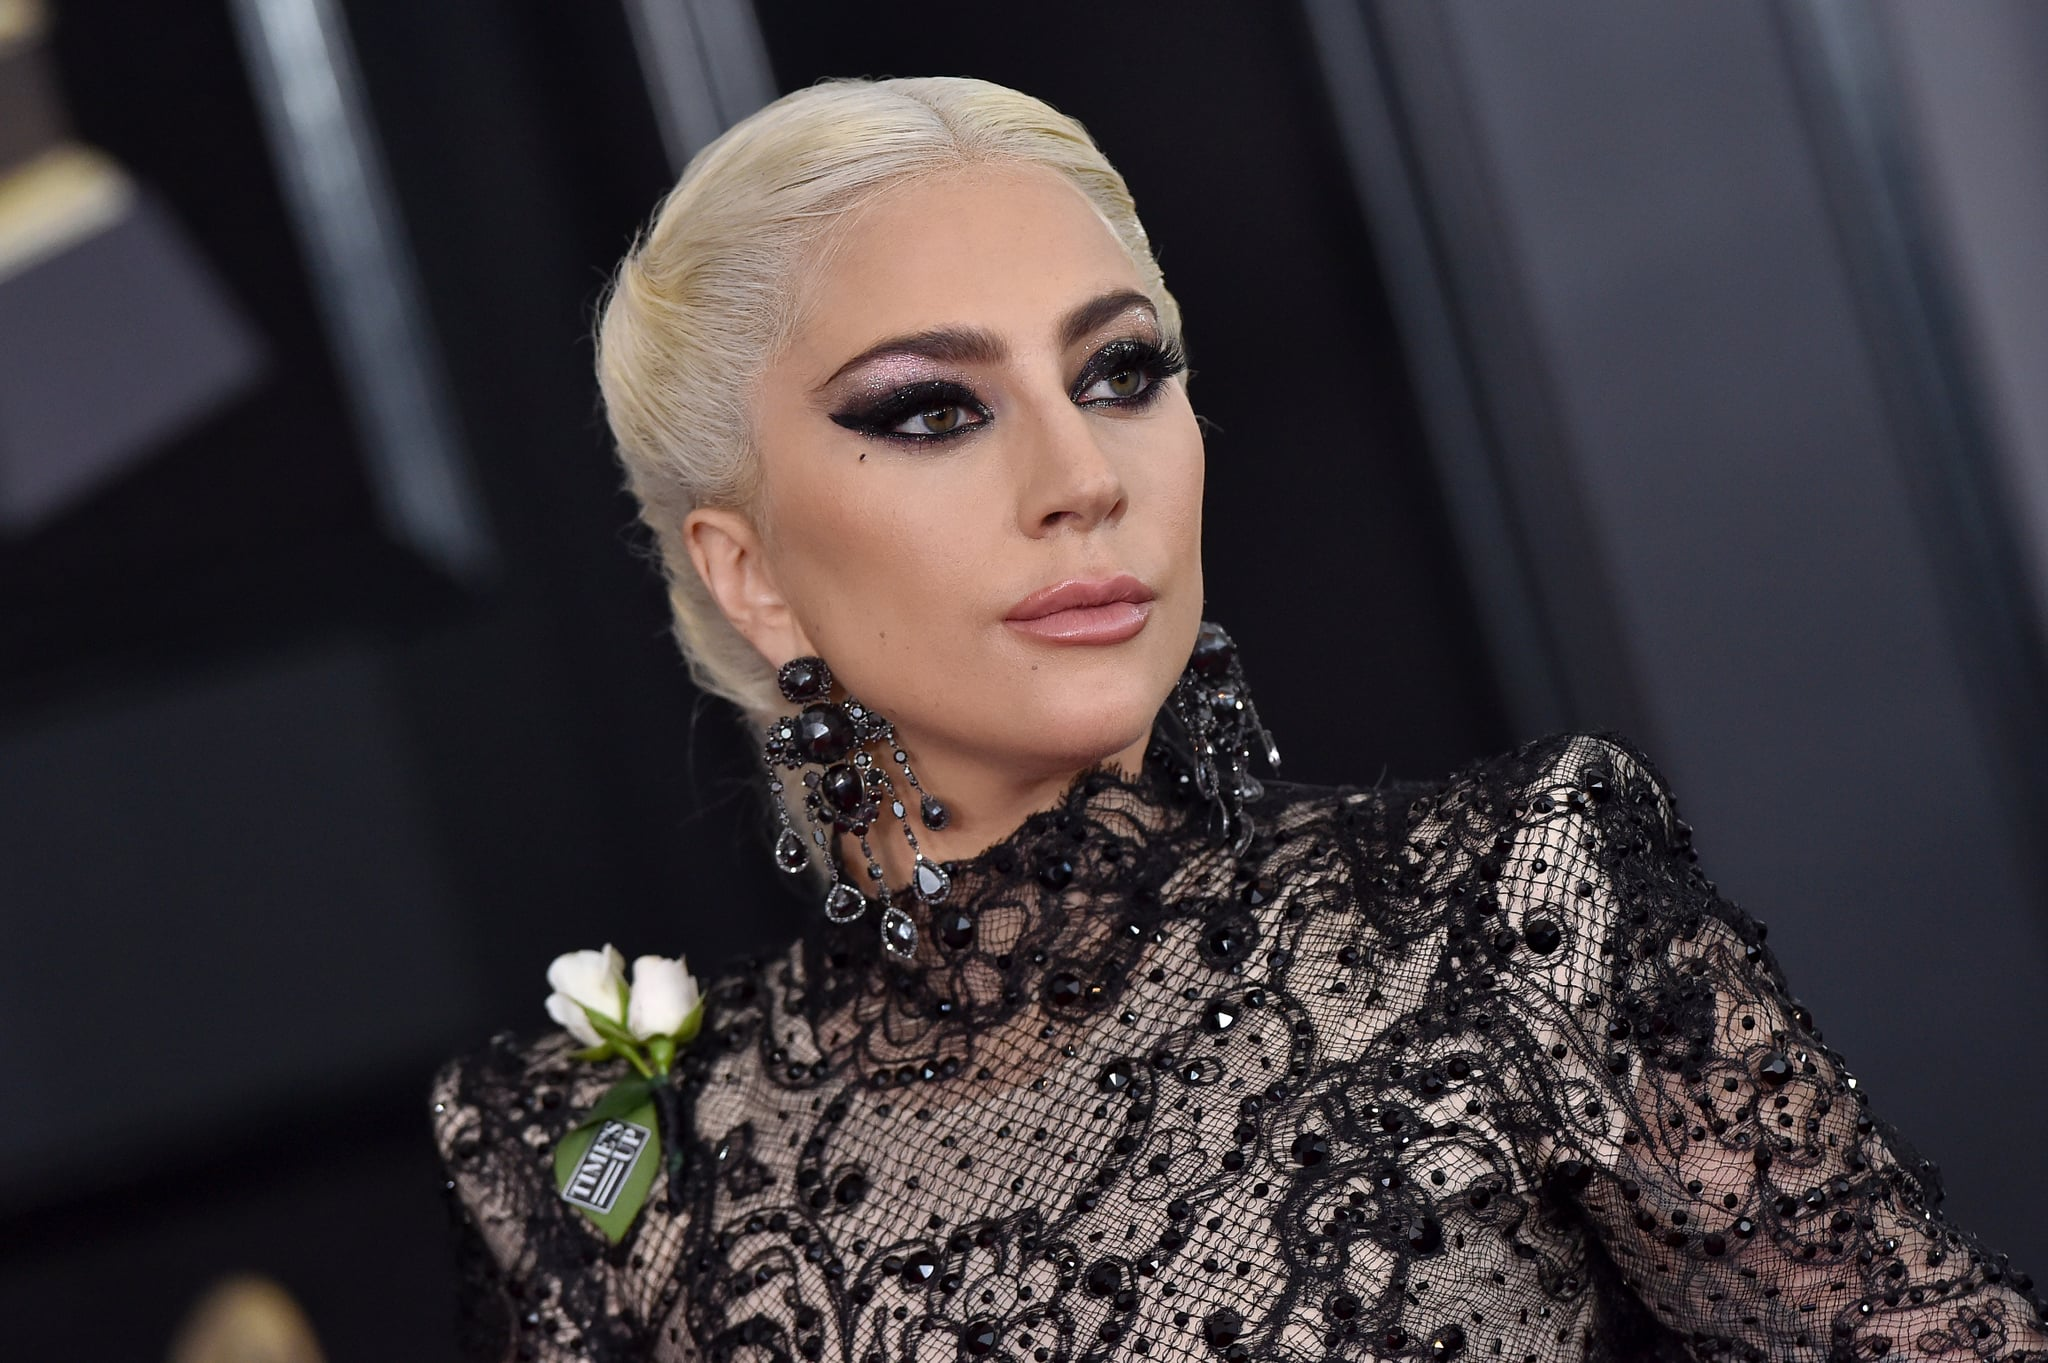 NEW YORK, NY - JANUARY 28:  Recording artist Lady Gaga attends the 60th Annual GRAMMY Awards at Madison Square Garden on January 28, 2018 in New York City.  (Photo by Axelle/Bauer-Griffin/FilmMagic)